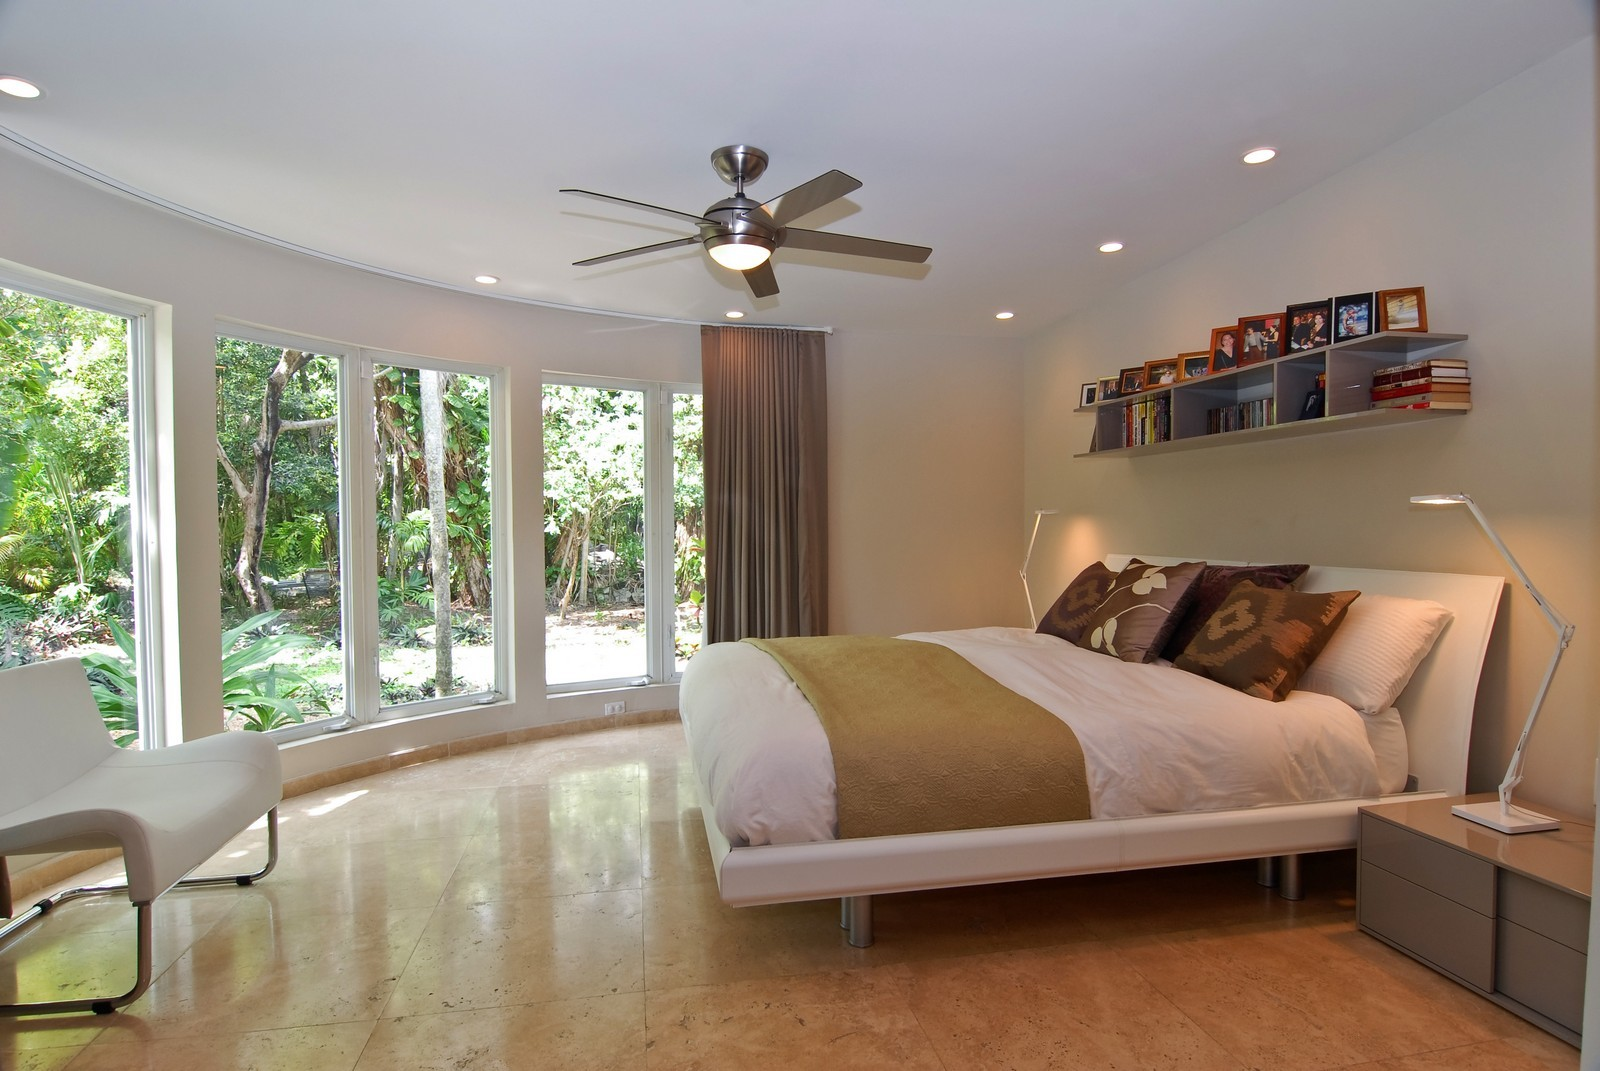 Real Estate Photography - 106 W 4th CT, Miami Beach, FL, 33139 - Master Bedroom